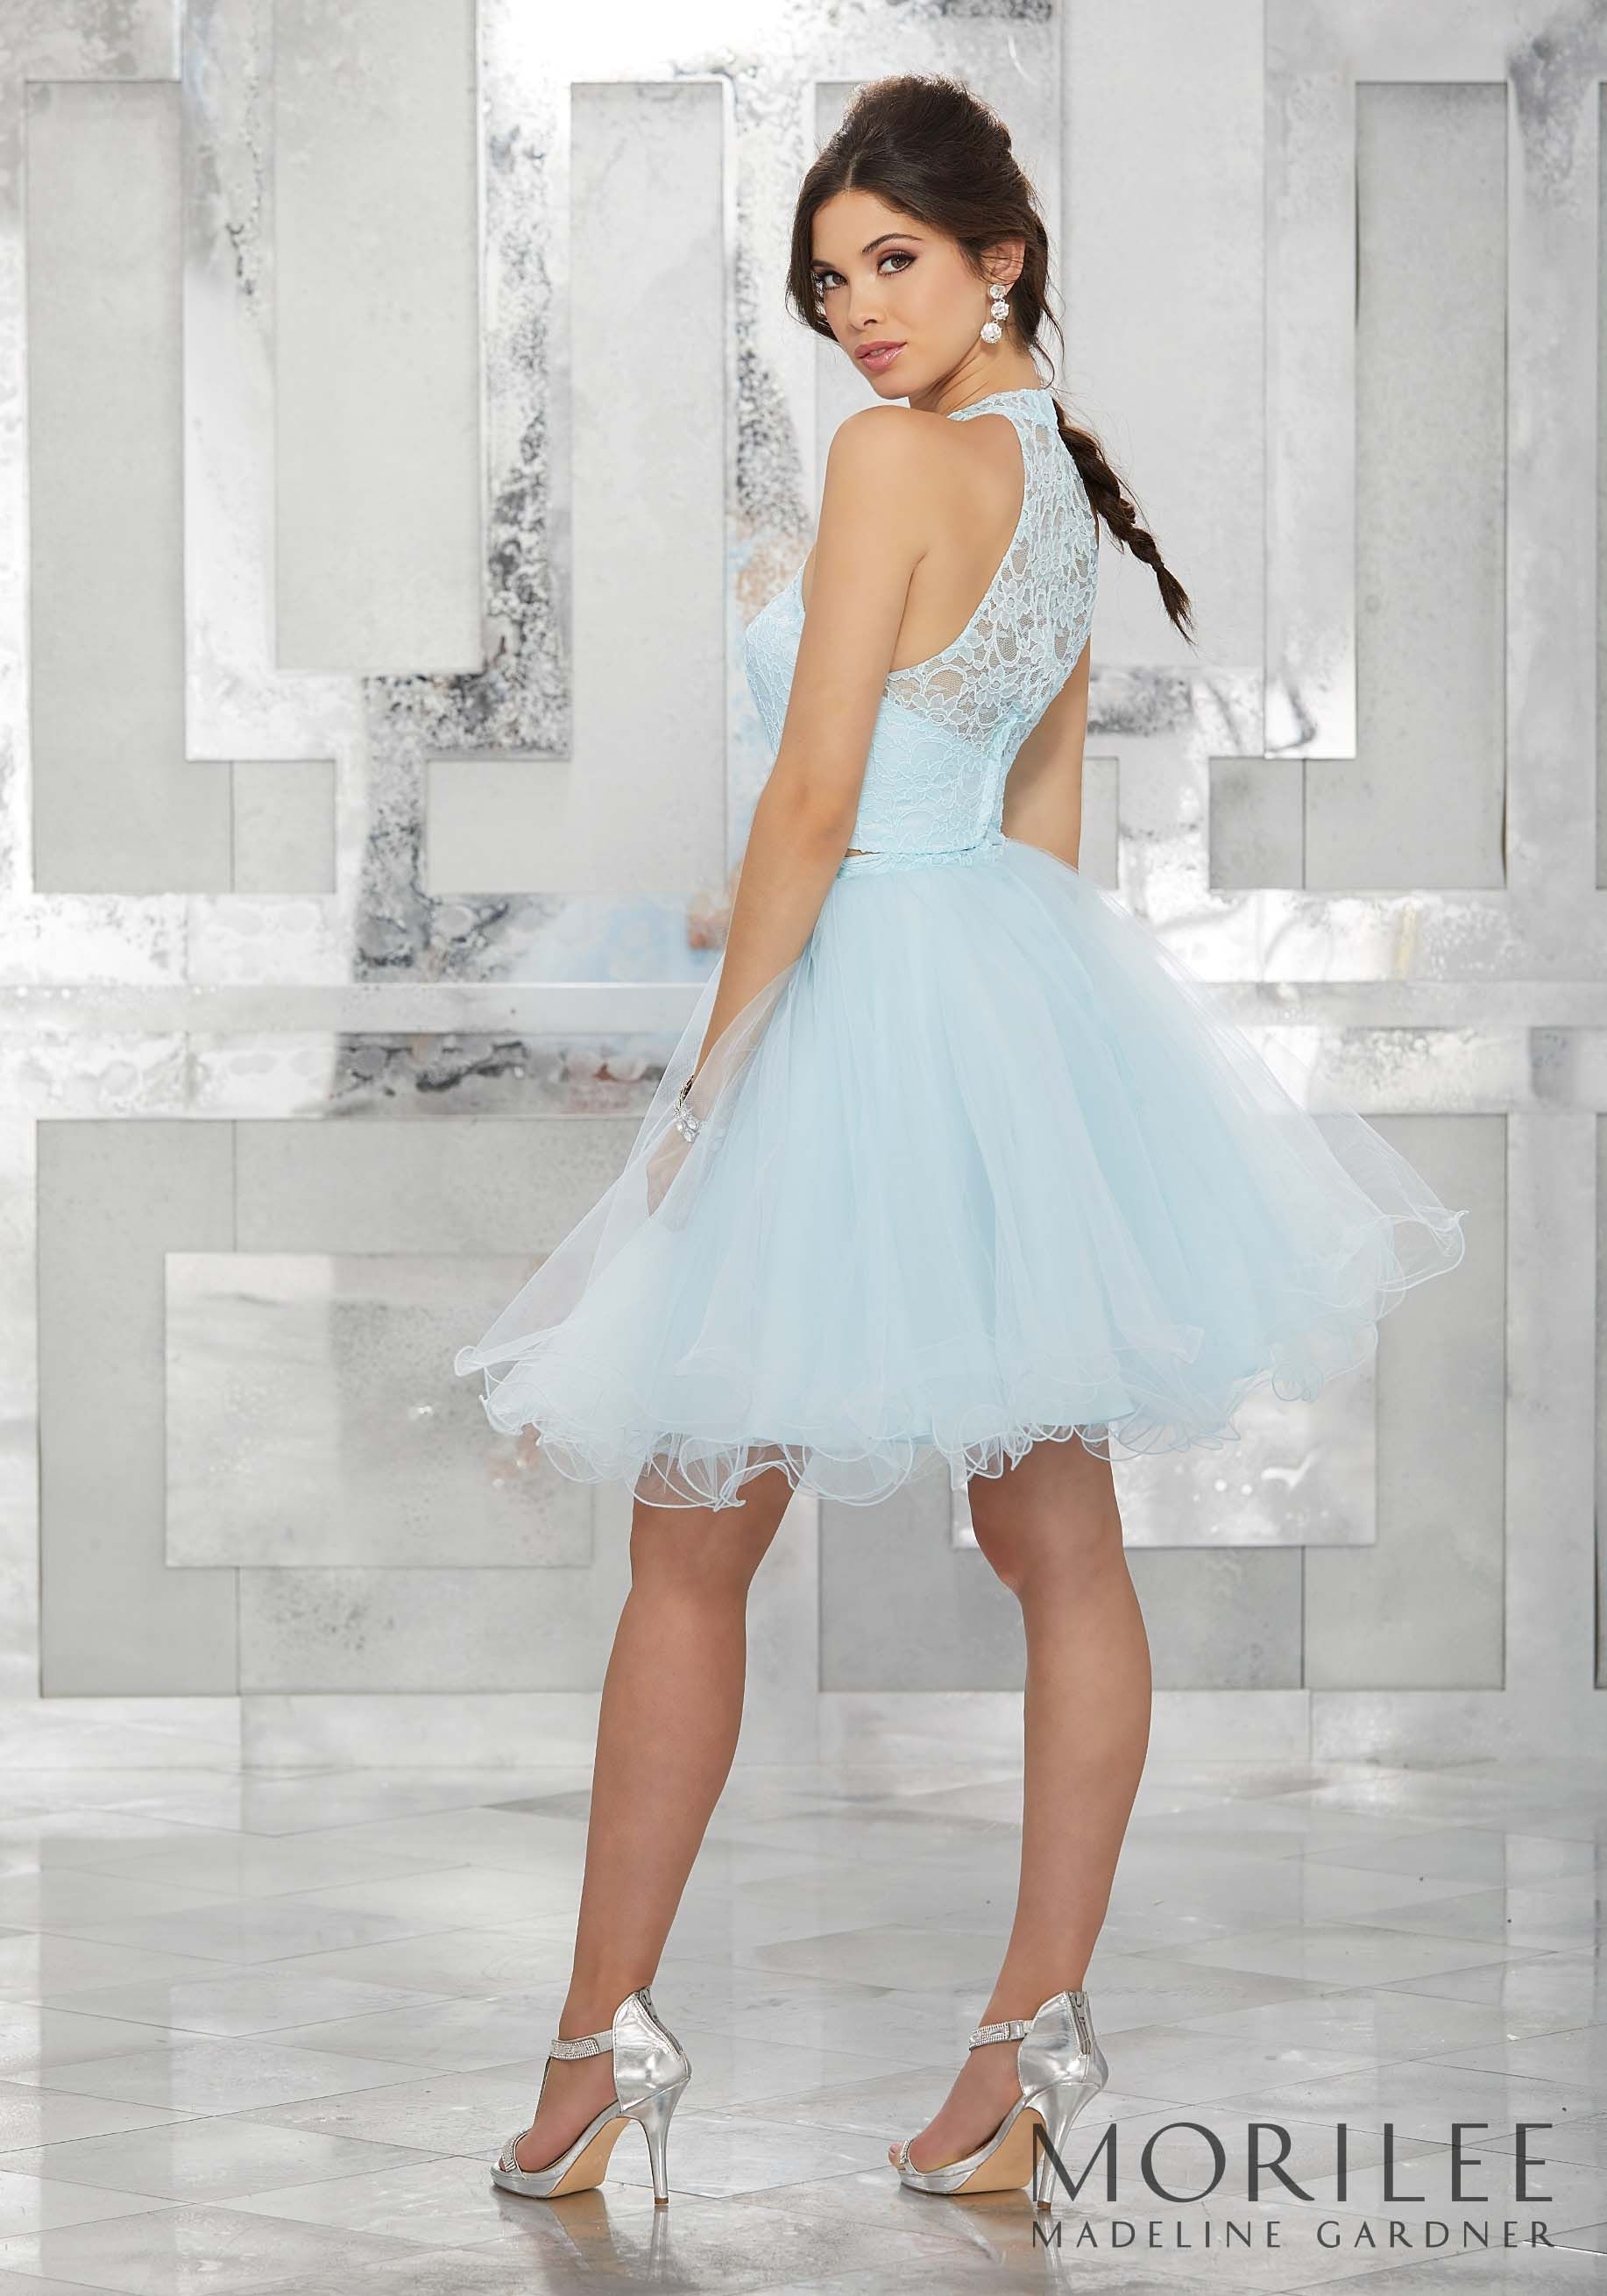 Light Blue Two Piece Party Dress With High Halter Lace Bodice And Tulle Skirt Colors Available Blush Light Blue Mint Tulle Skirt Damas Dresses Party Dress [ 2620 x 1834 Pixel ]